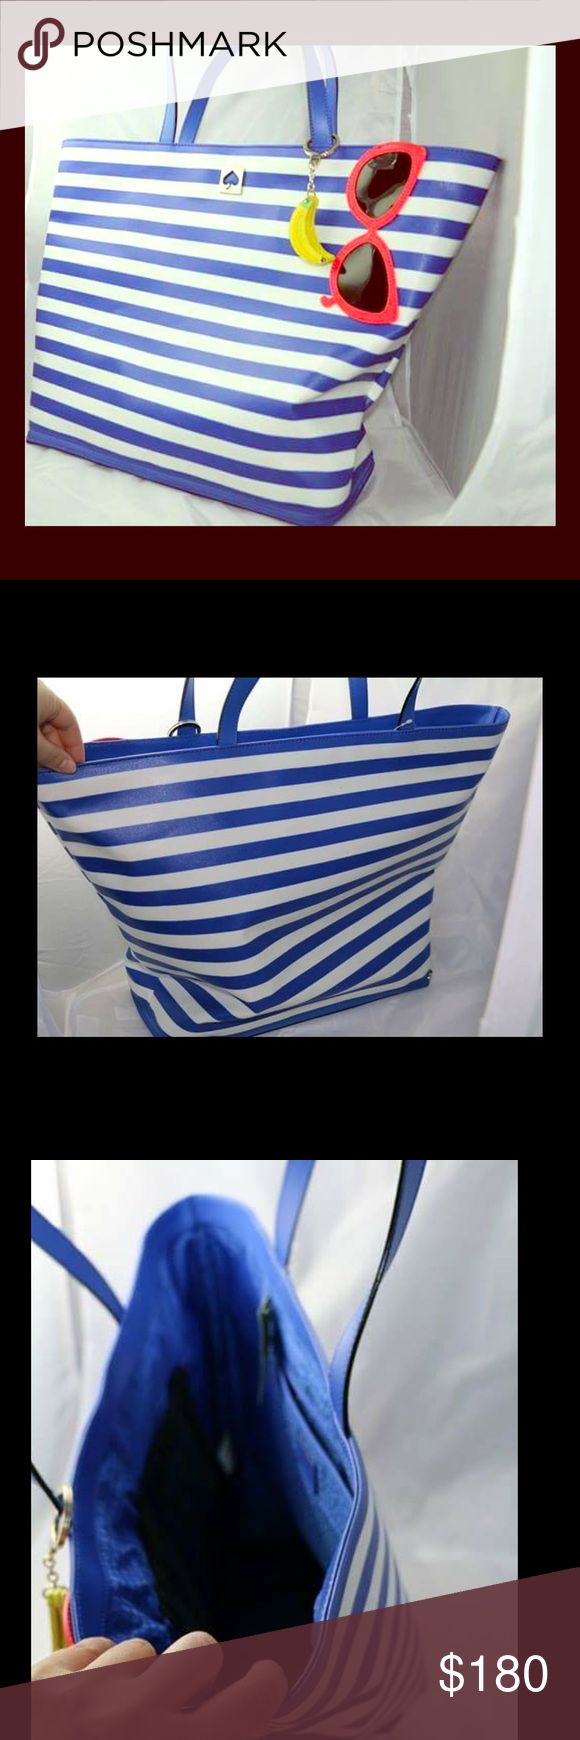 Make A Splash Kate Spade Beach Bag Kate spade mint condition never used beach bag with brand new never used Banana leather  Key chain added. Color blue and white stripe. Sunglasses embroidered. Very deep. Open top tote. Interior zipper pockets. Bottom unzips with sand sifter. 14 karat gold plated hardwear. Imported. Style wkru3721 canvas with lacquer coating and leather trim. kate spade Bags Totes